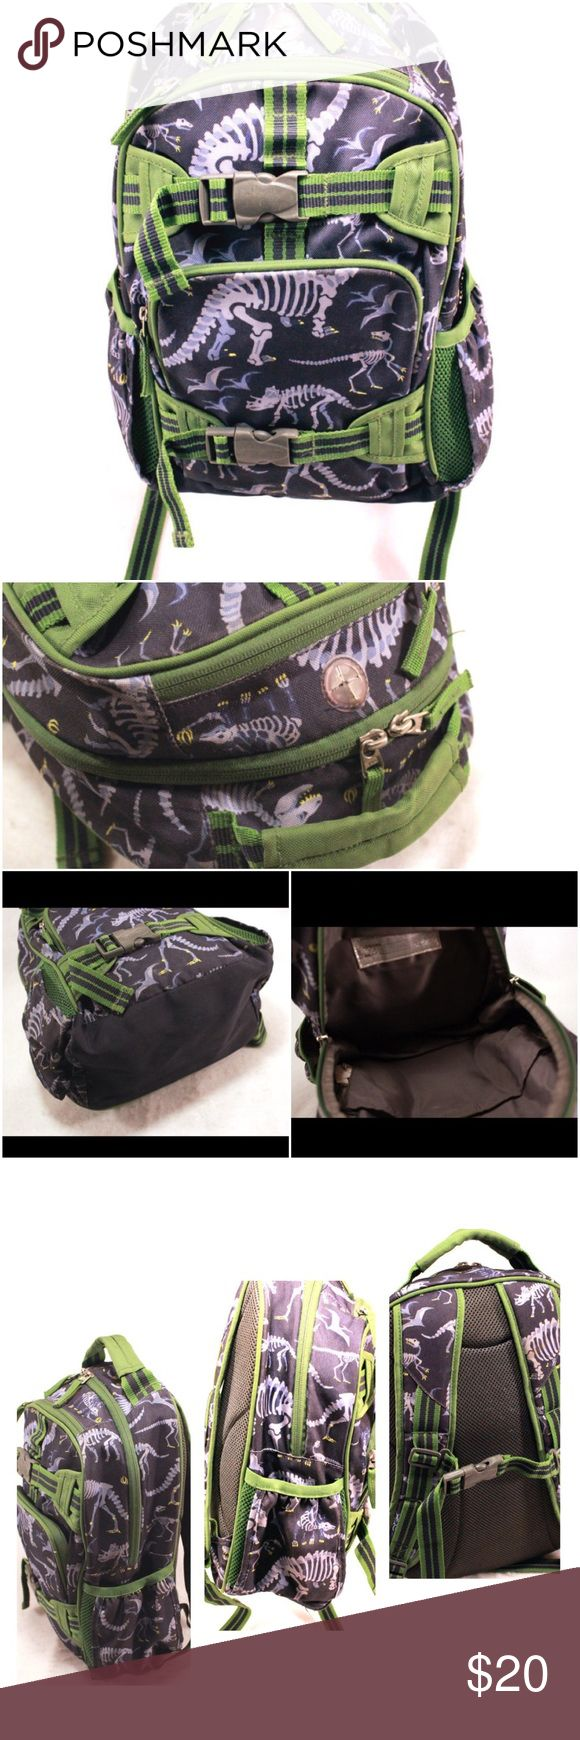 "POTTERY BARN KIDS Navy and Olive Dinosaur Backpack POTTERY BARN KIDS Navy and Olive Dinosaur Backpack.  Super durable and functional, the rugged, roomy Mackenzie backpack has numerous pockets, straps and gear loops. Made of water-resistant polyester with adjustable padded shoulder straps. Exterior straps hold a lunch bag. Exterior side pockets. 14.5x16x5.5"" with 2"" strap drop. Name written inside.  Otherwise fantastic condition.  Fun for those of us who still love dinos! Orig. $69. Pottery…"